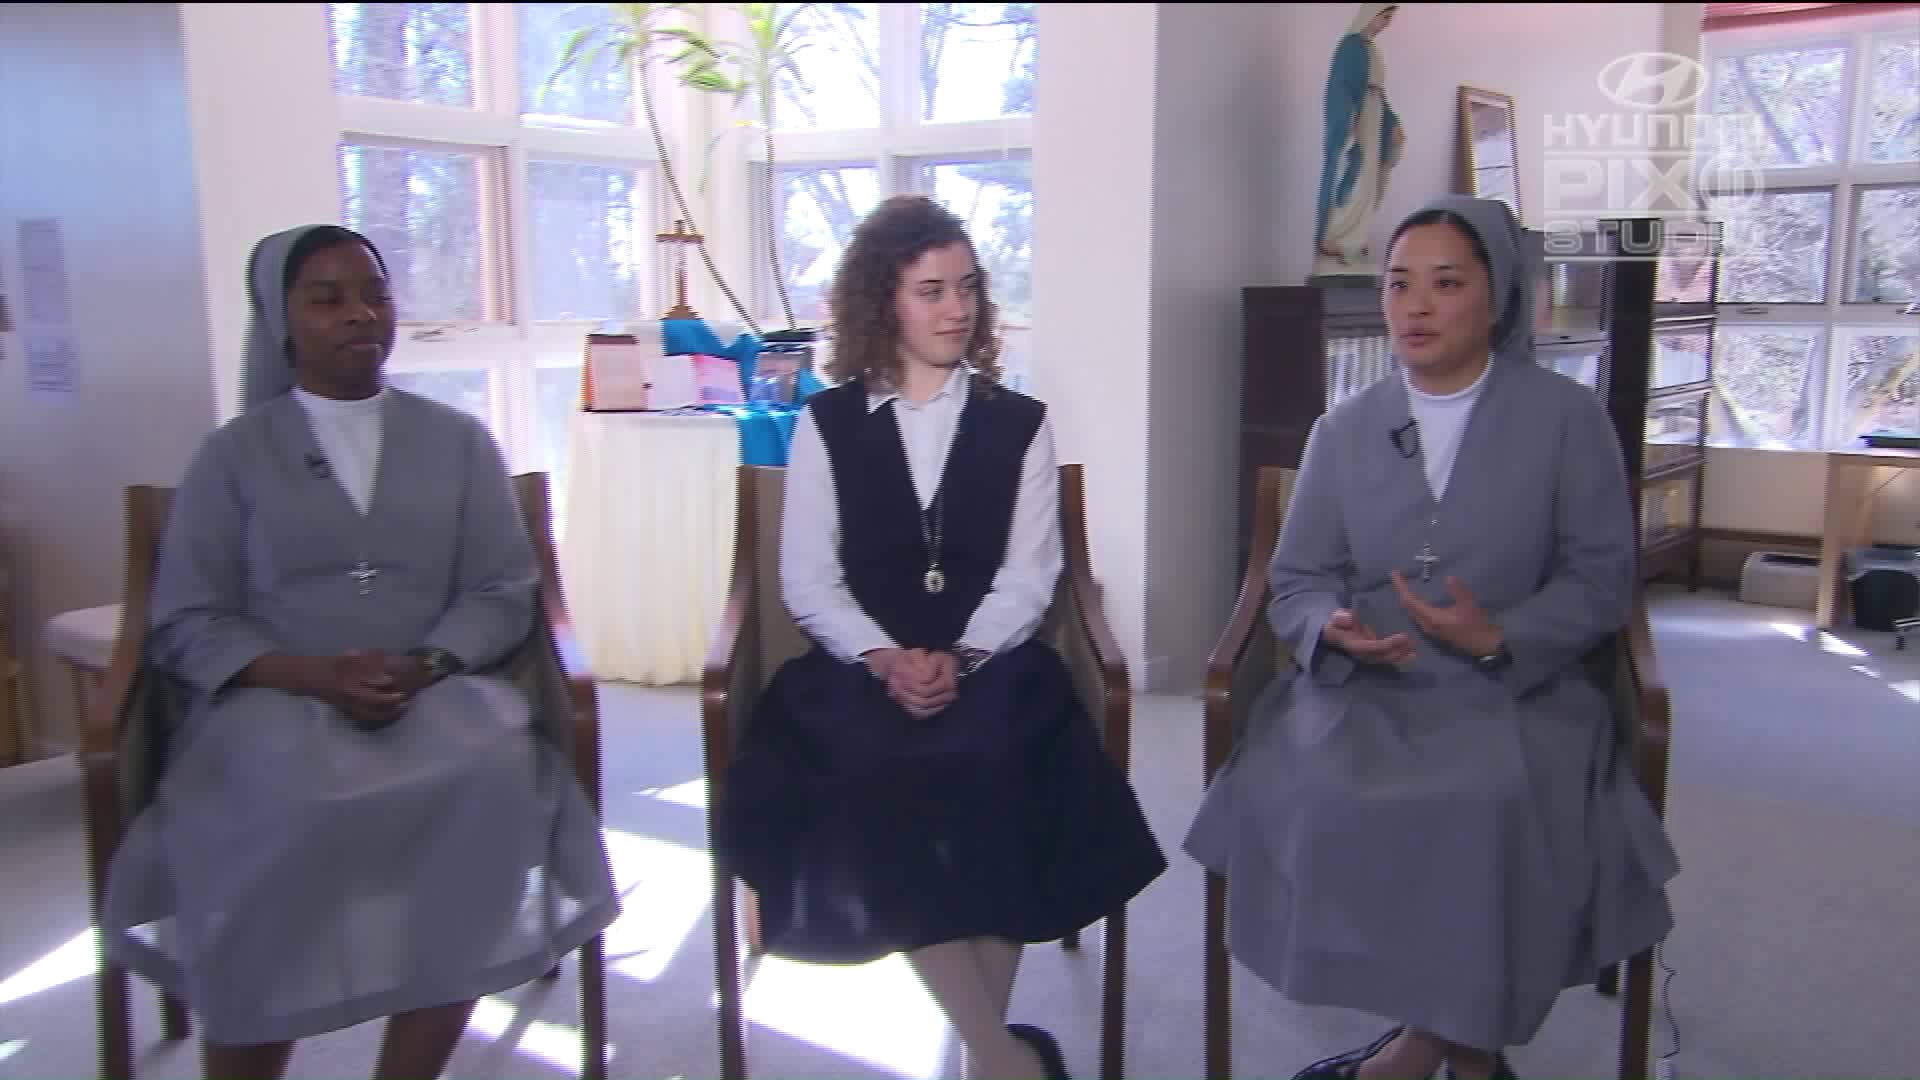 Young Women Reveal Why They Want to Be Nuns